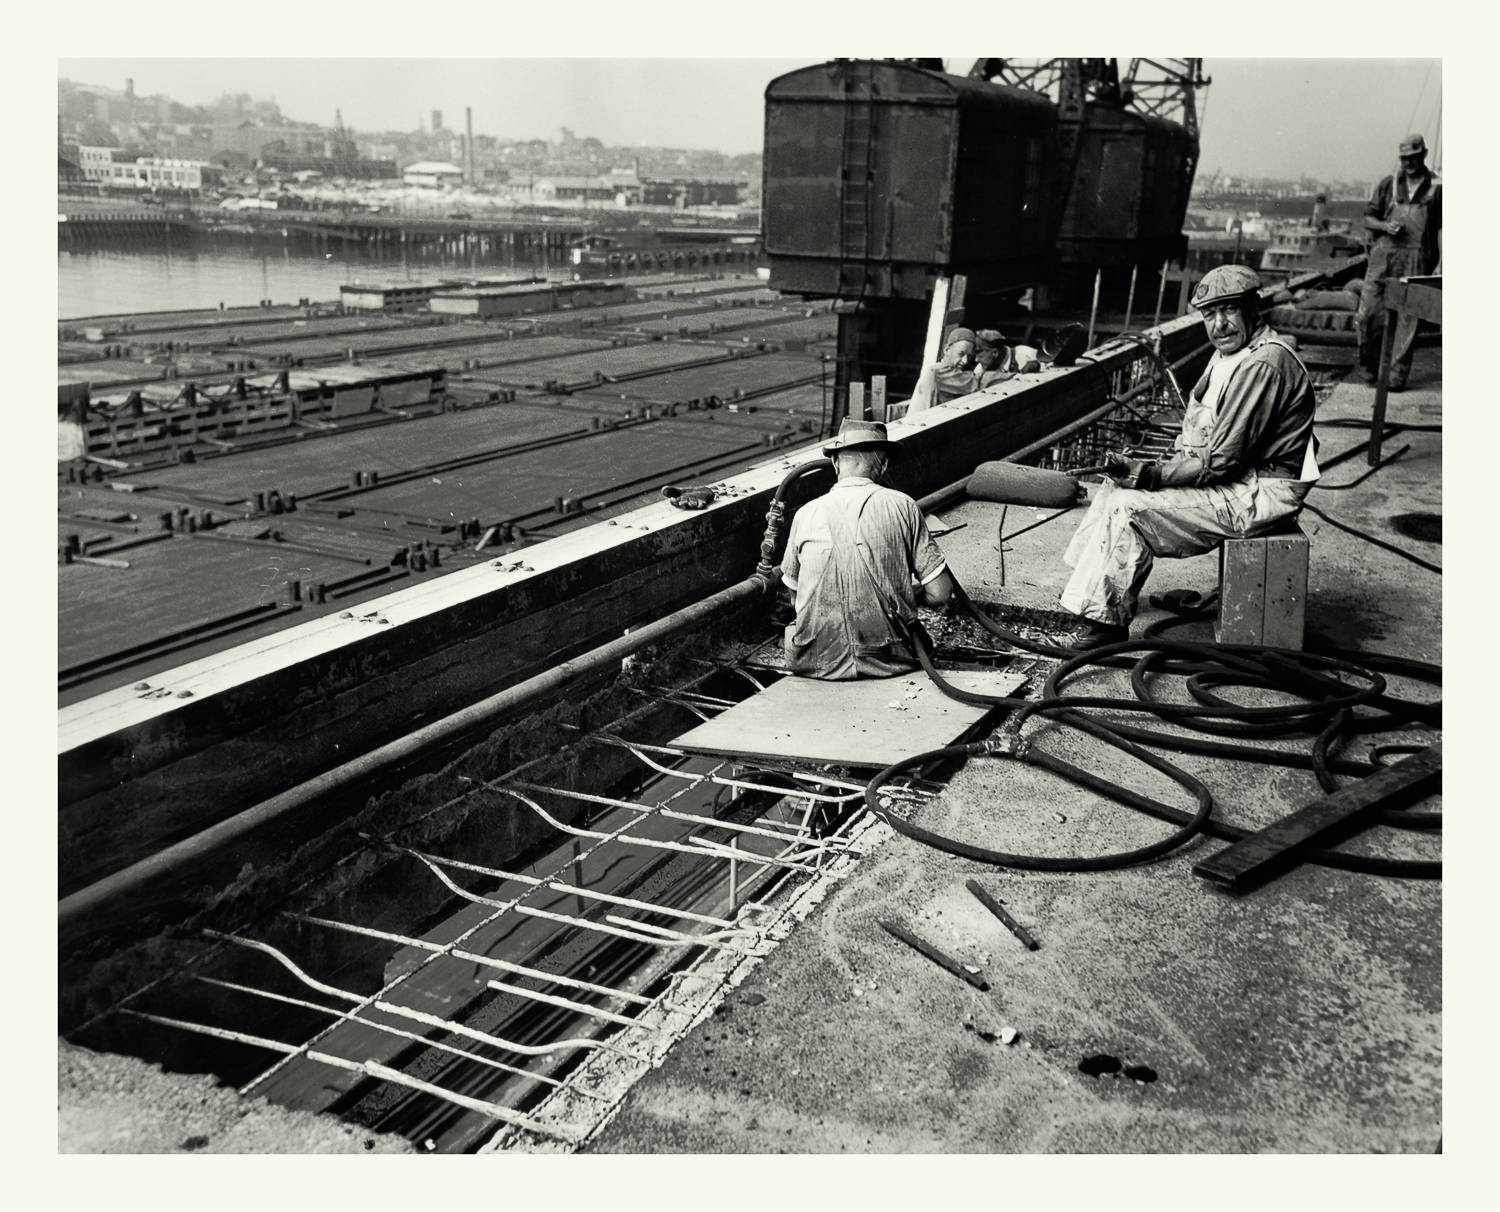 """Photograph No. 4 """"Photograph depicting workers during the construction of the Boston Army Base."""" August 12, 1946; US Army Corps of Engineers. Records of the Office of the Chief of Engineers, 1789-1999, RG 77; NARA Boston."""